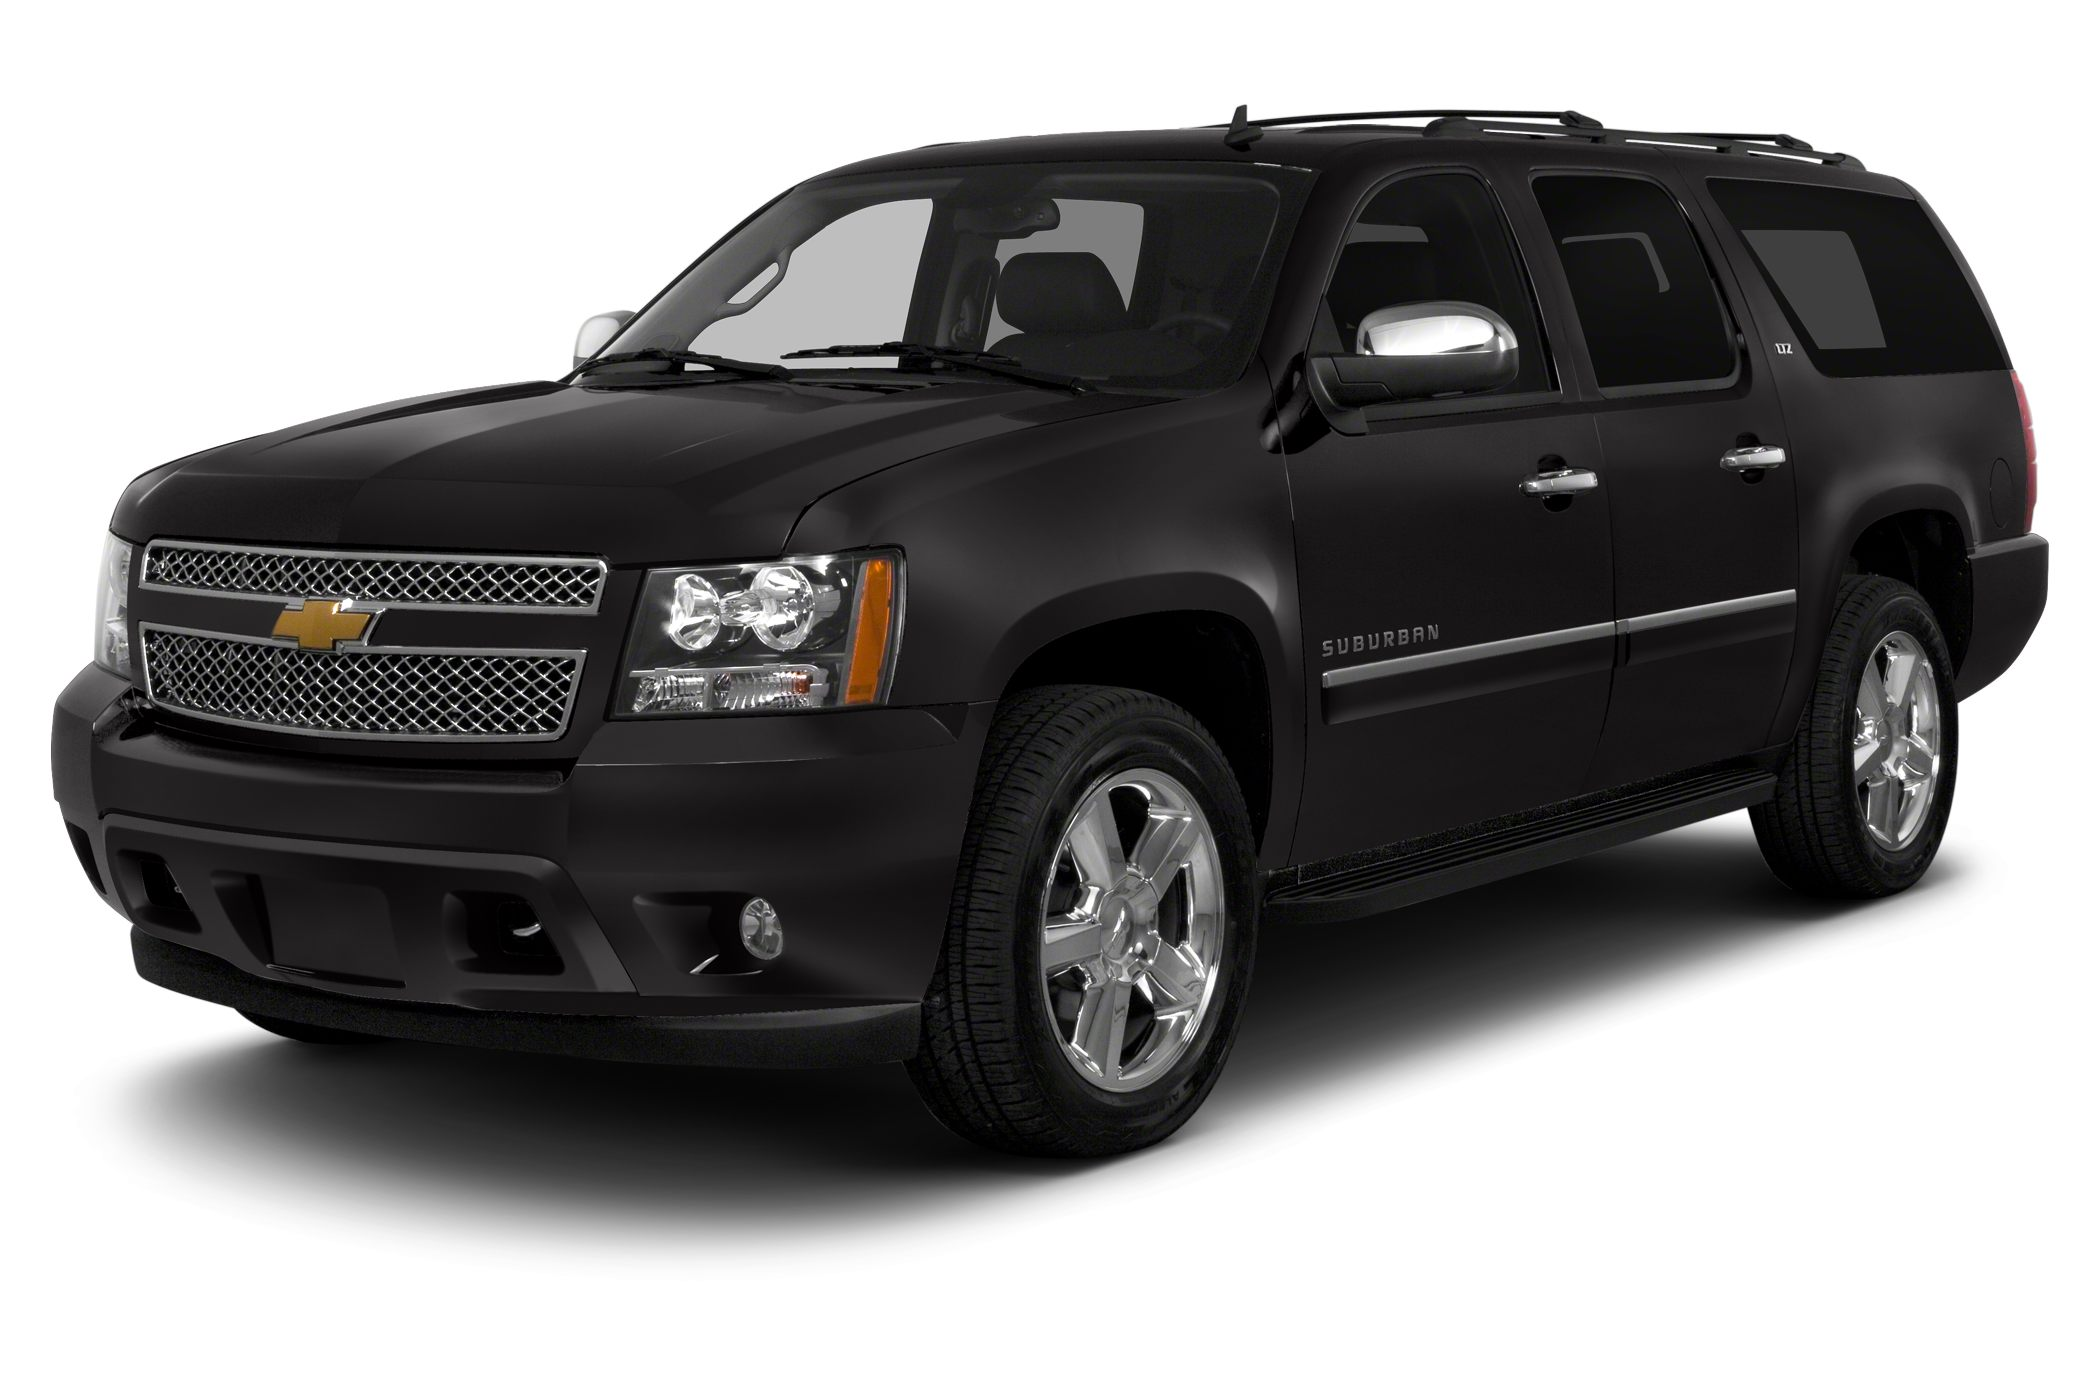 Best used suvs and used pickups for sale - Chevy Suburban